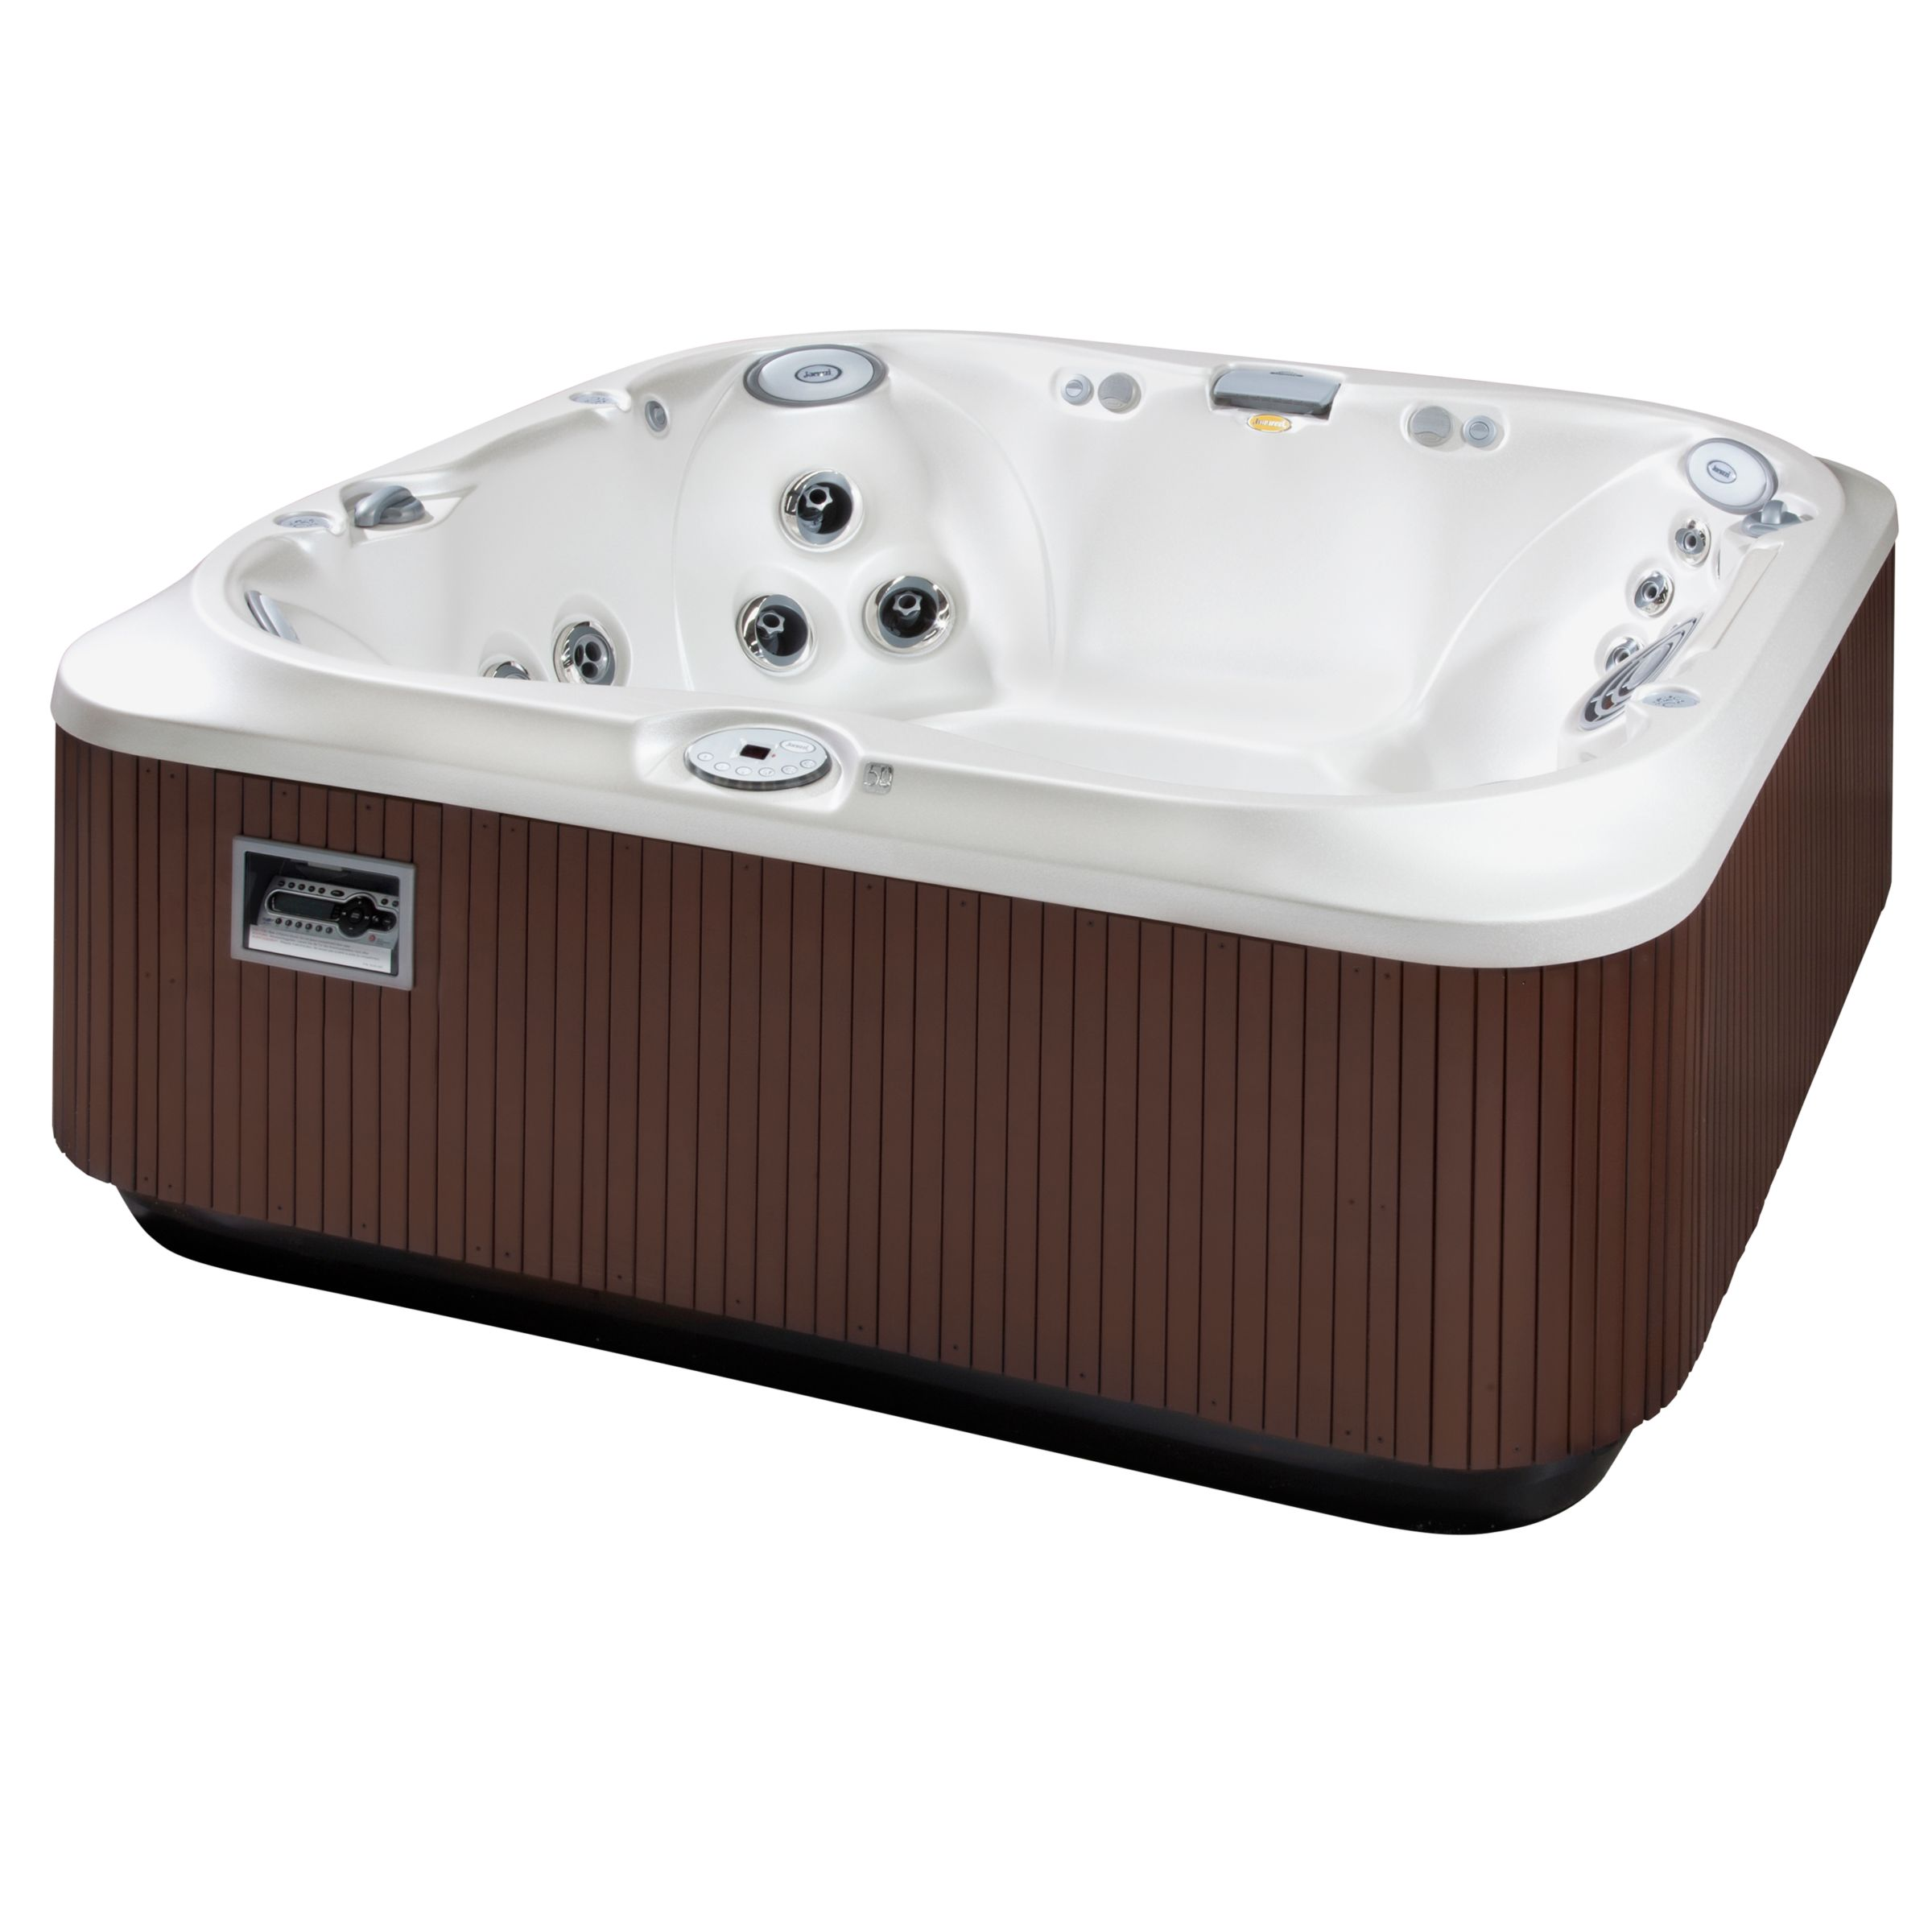 Jacuzzi UK Party Outdoor Hot Tub, Pearl Acrylic / Roast Chestnut Cabinet